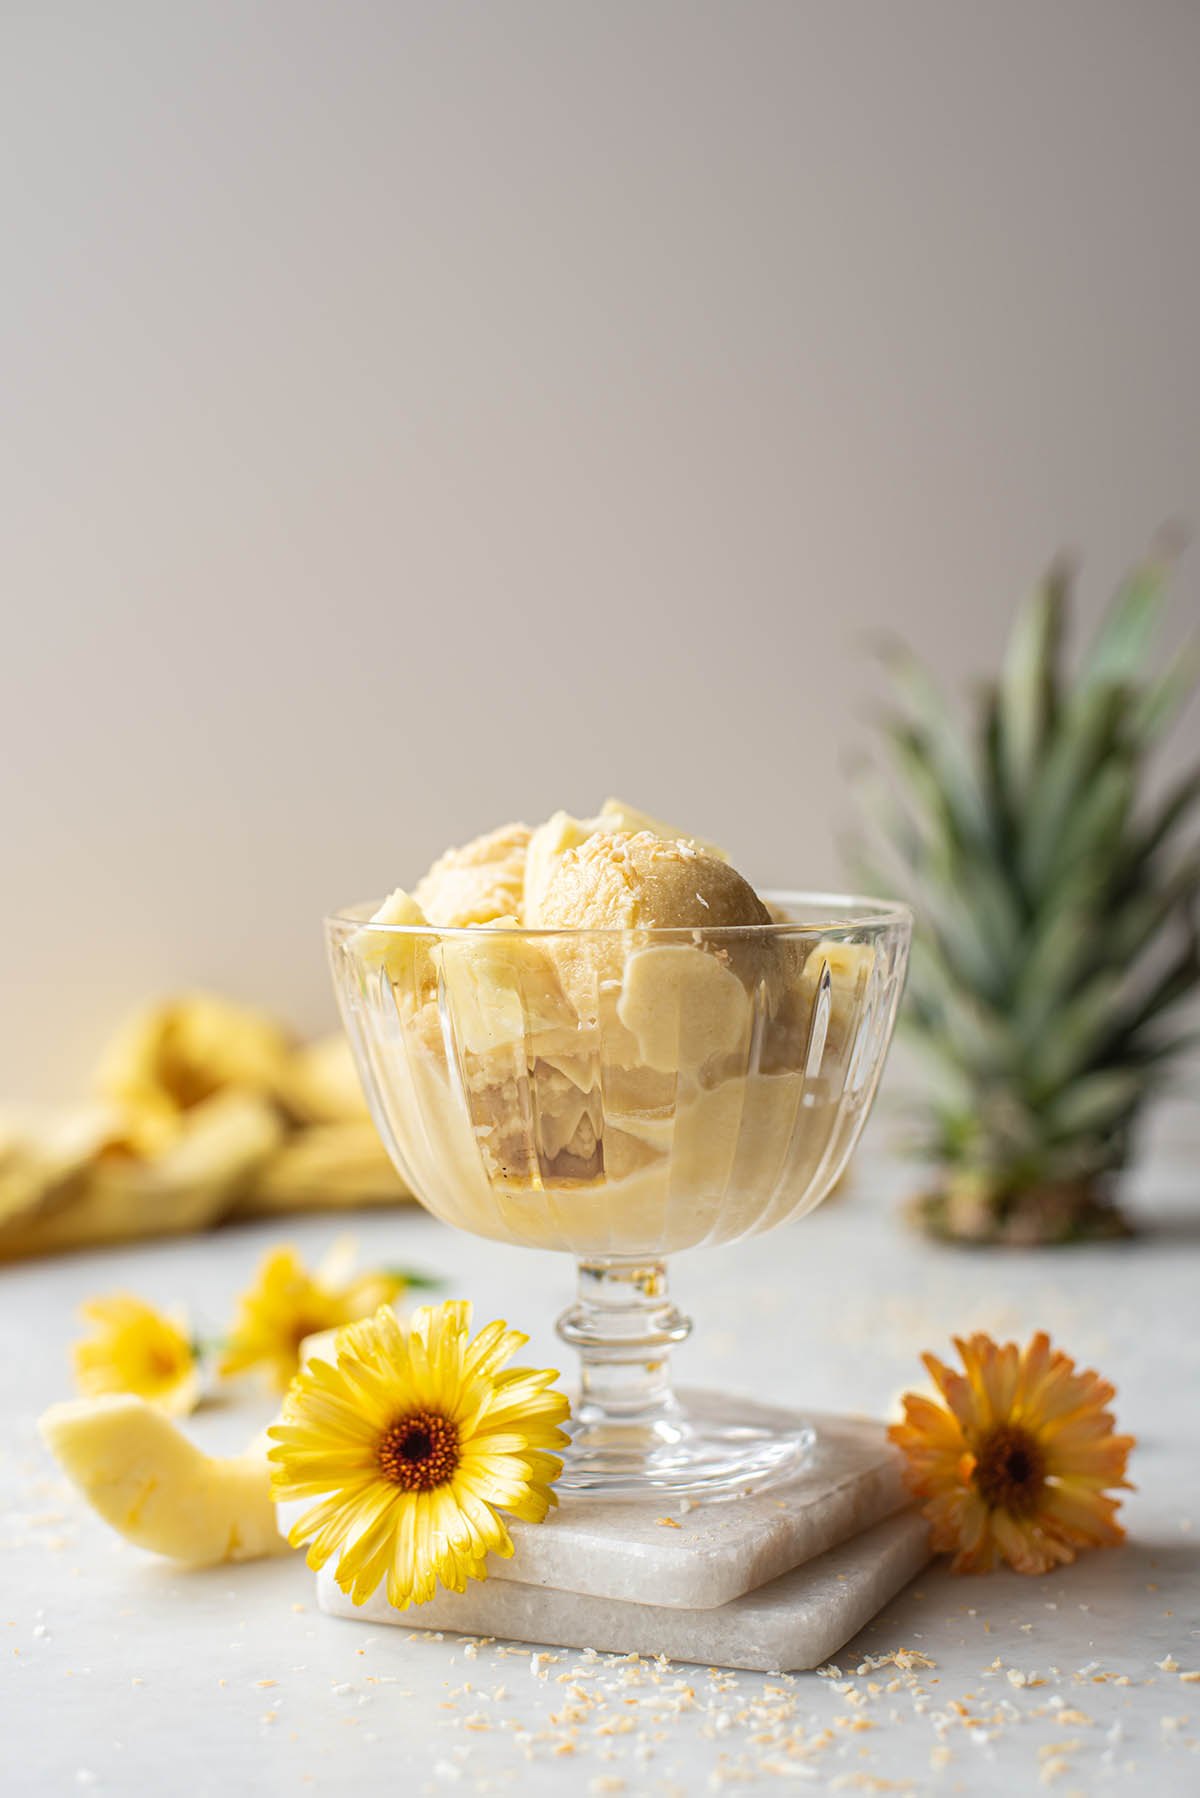 A small glass pedestal dish of coconut pineapple ice cream.